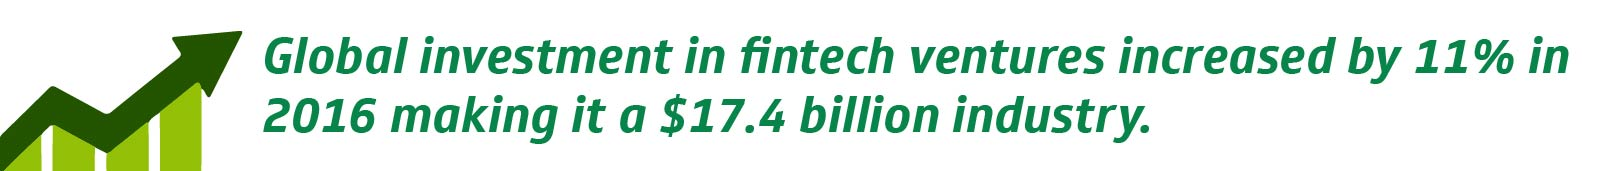 Investment in fintech increased by 11% in 2016